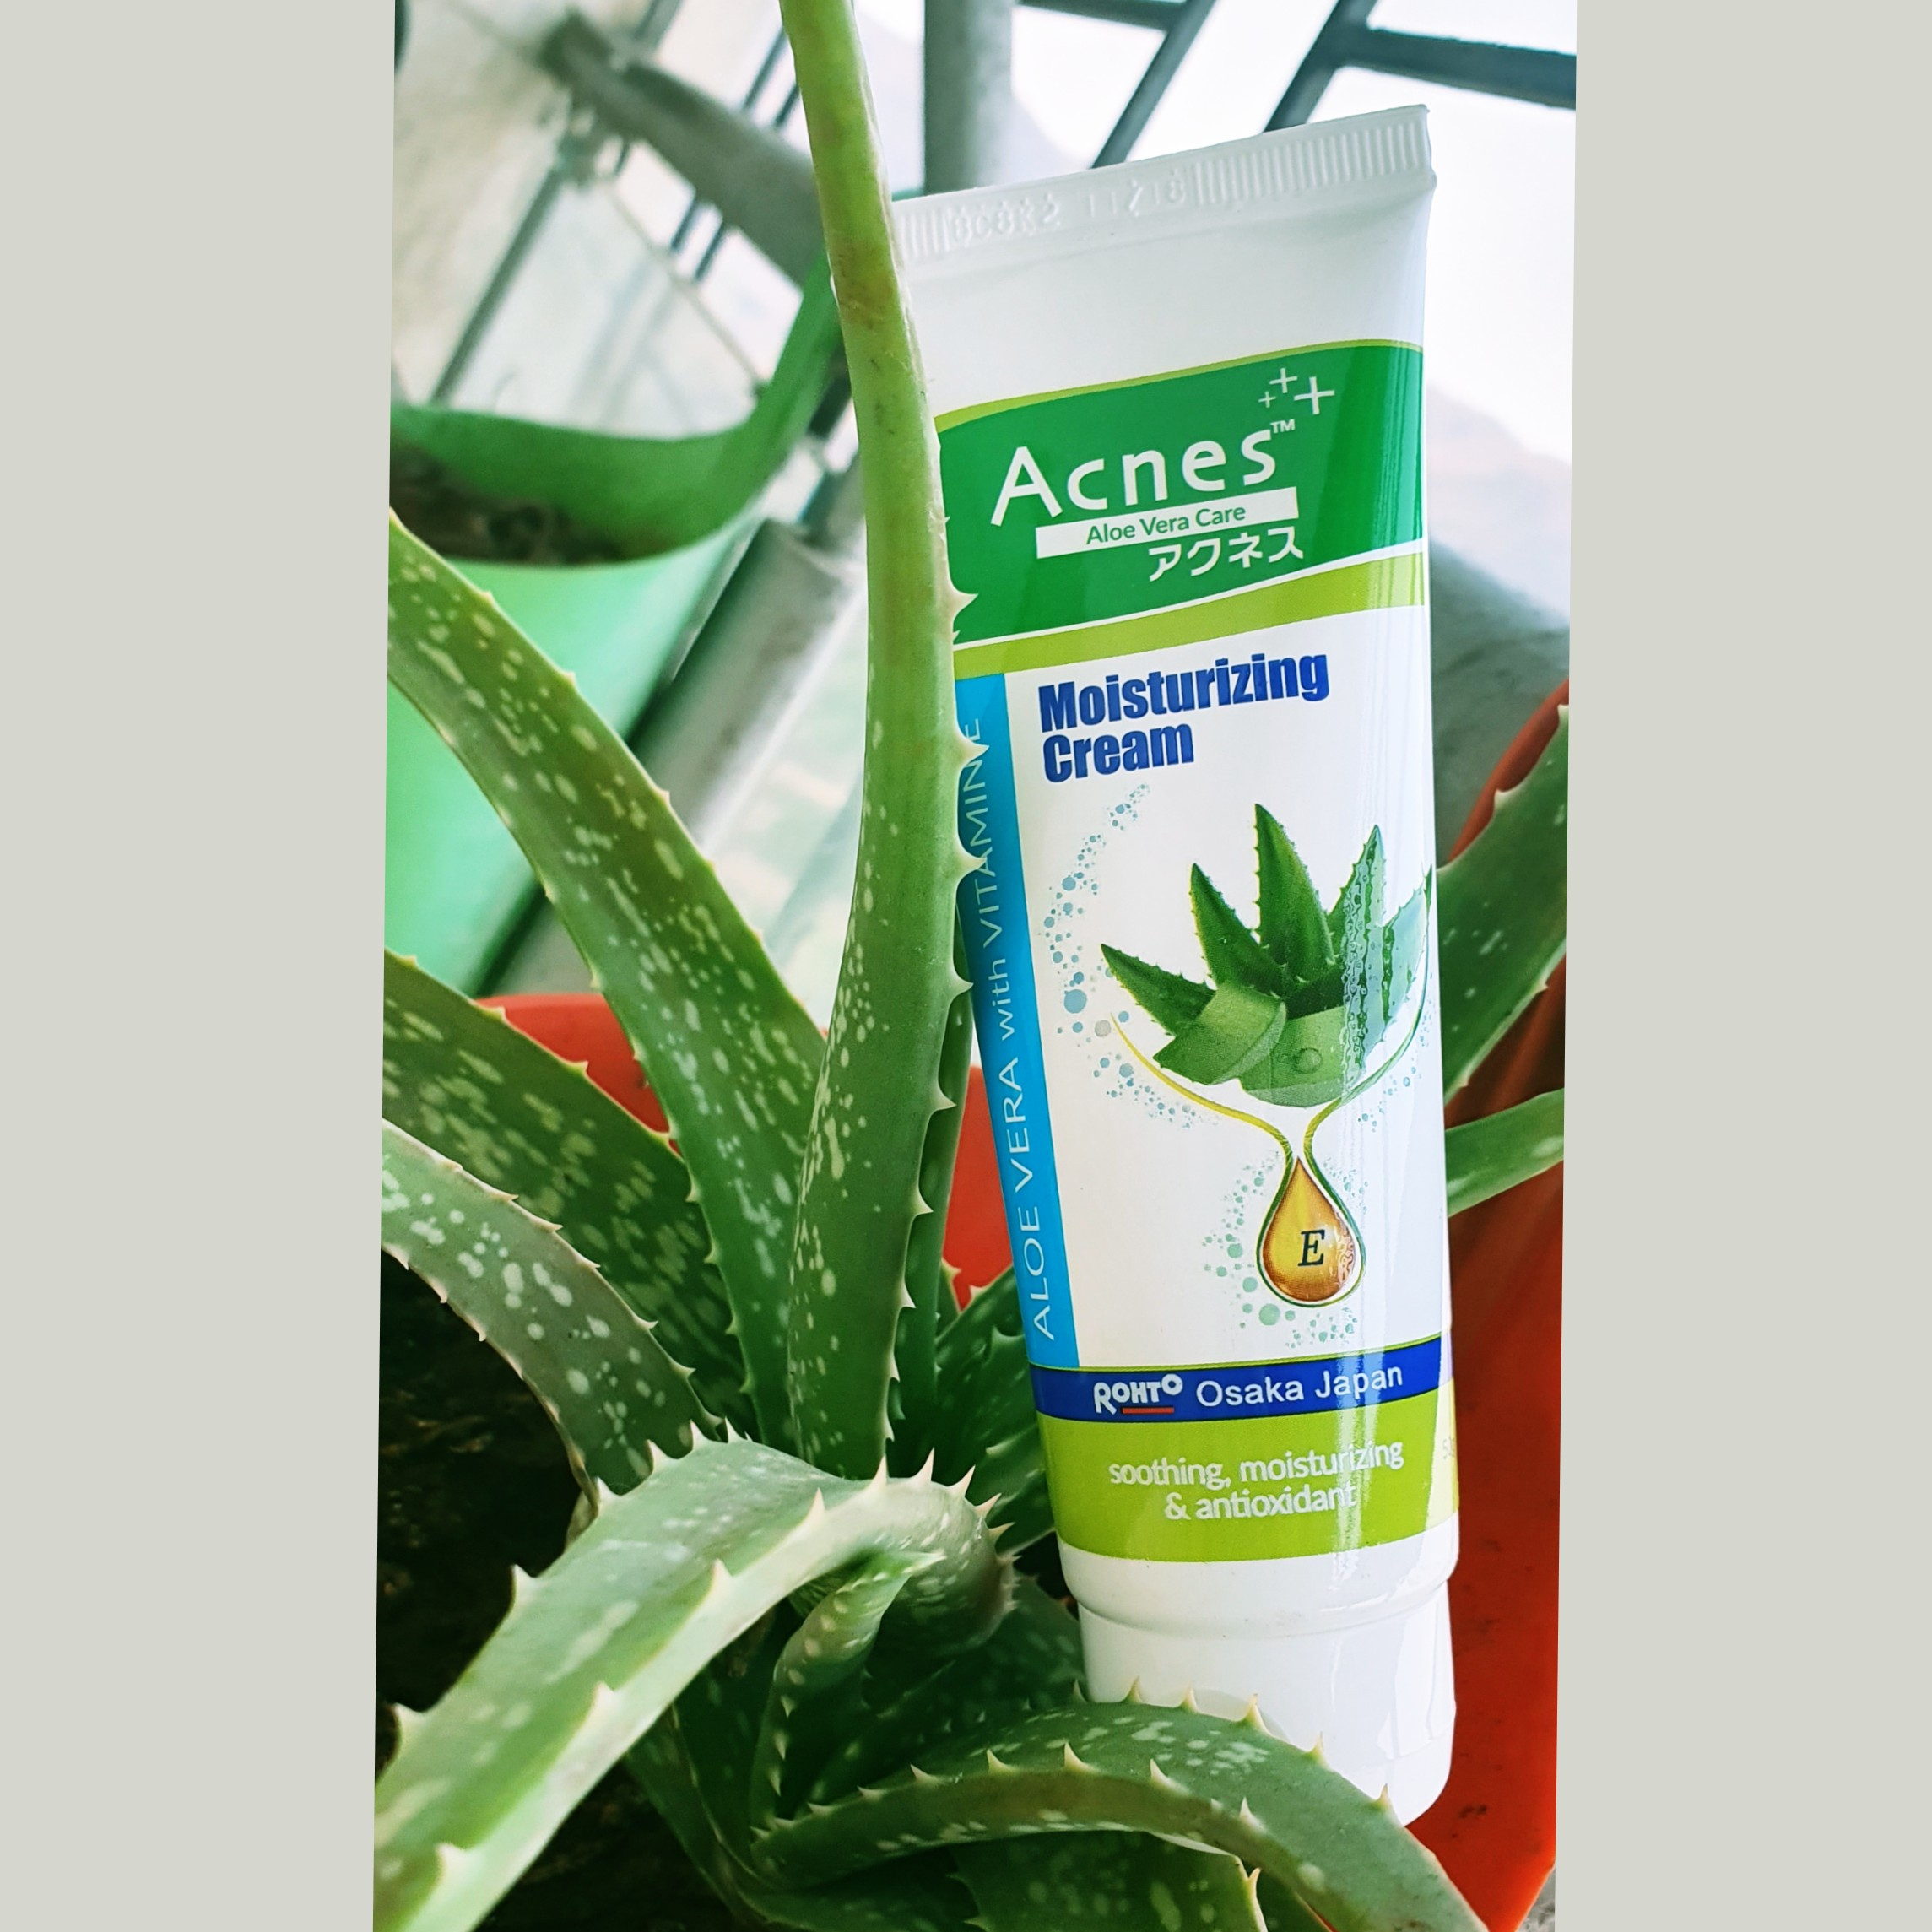 Acnes Aloe Vera With Vitamin E Moisturizing Cream-One of the best moisturizing creams-By all_the_rage_lifestyle,_travel_